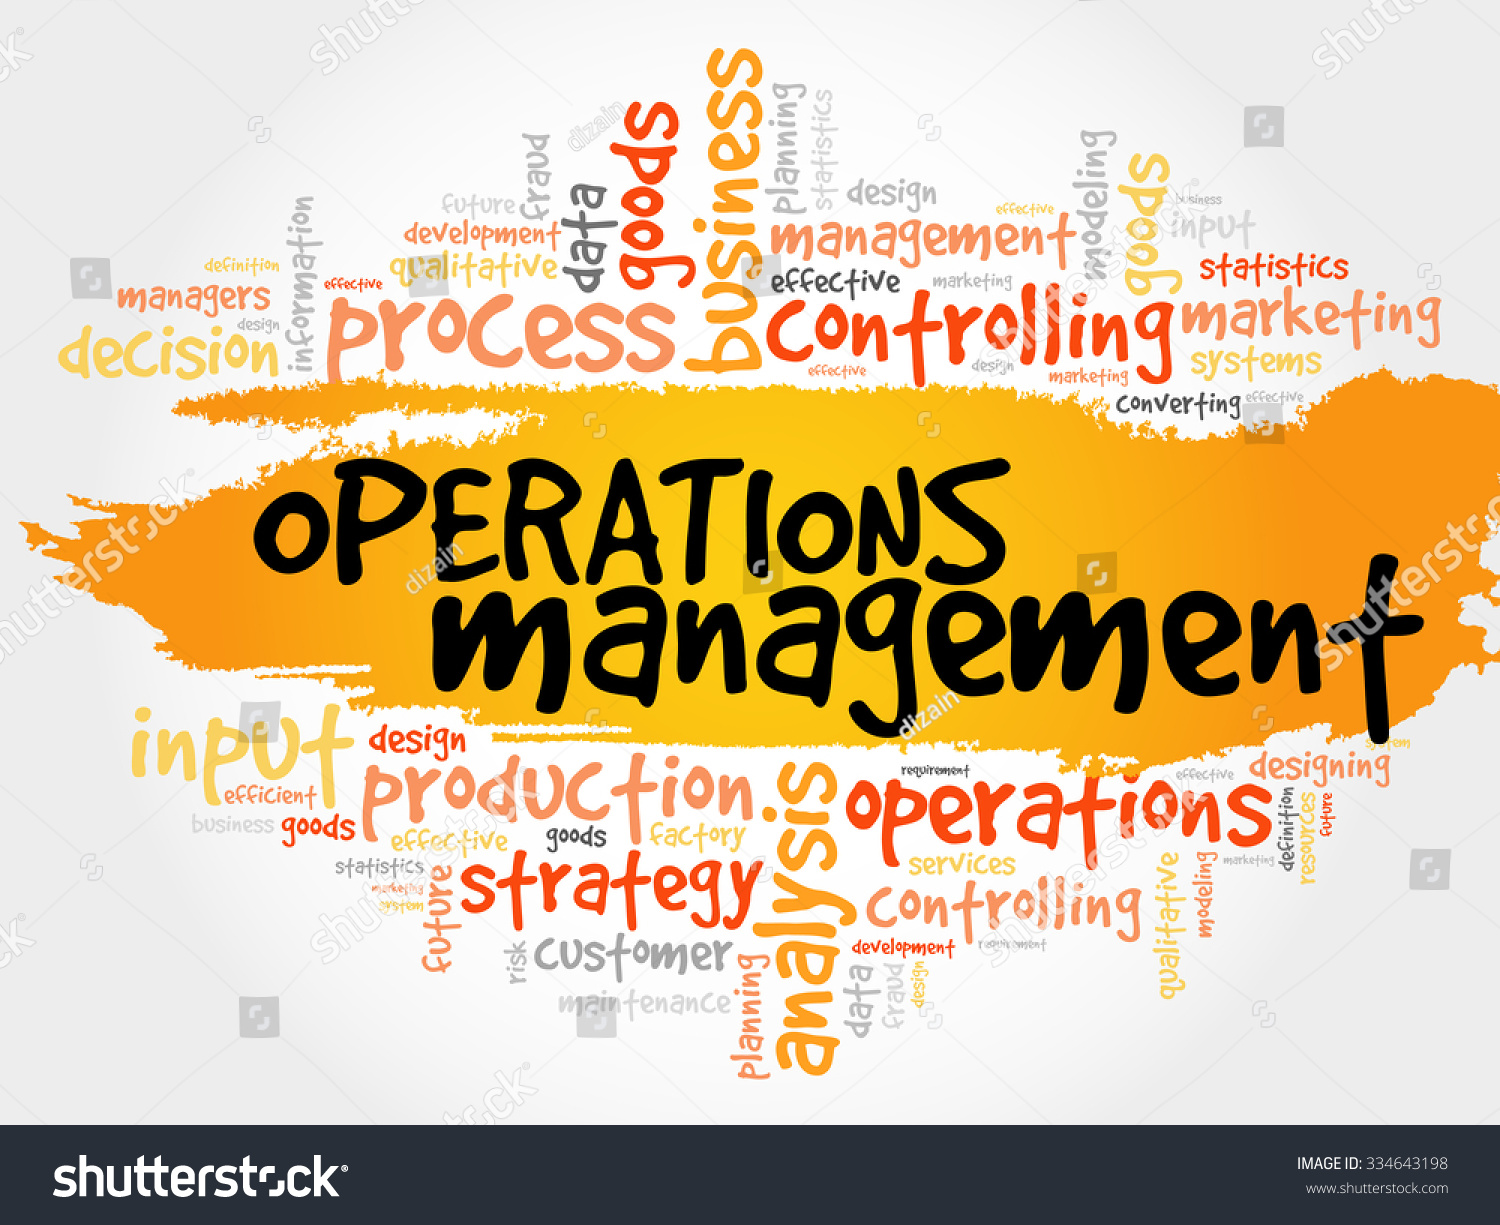 operations management in business Operations management centers on integration of technology, people, and operating procedures to execute ongoing organizational tasks it focuses on analyses, design, and management of.